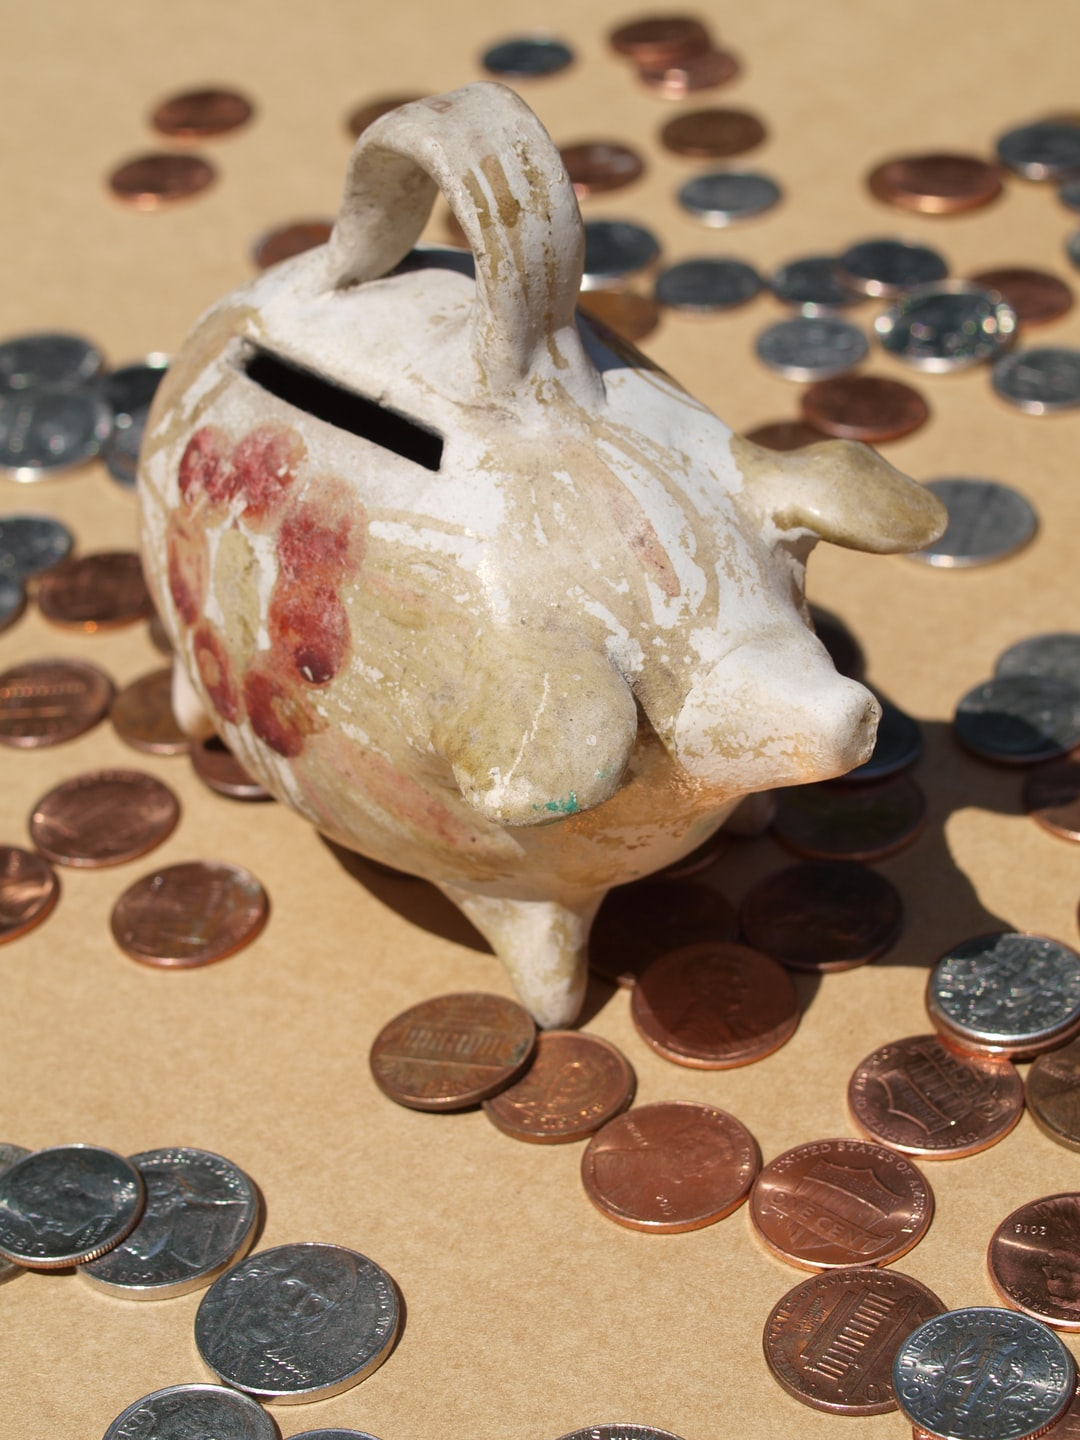 Vintage 1960s potter piggy bank from South America with scattered American coins on a brown background.